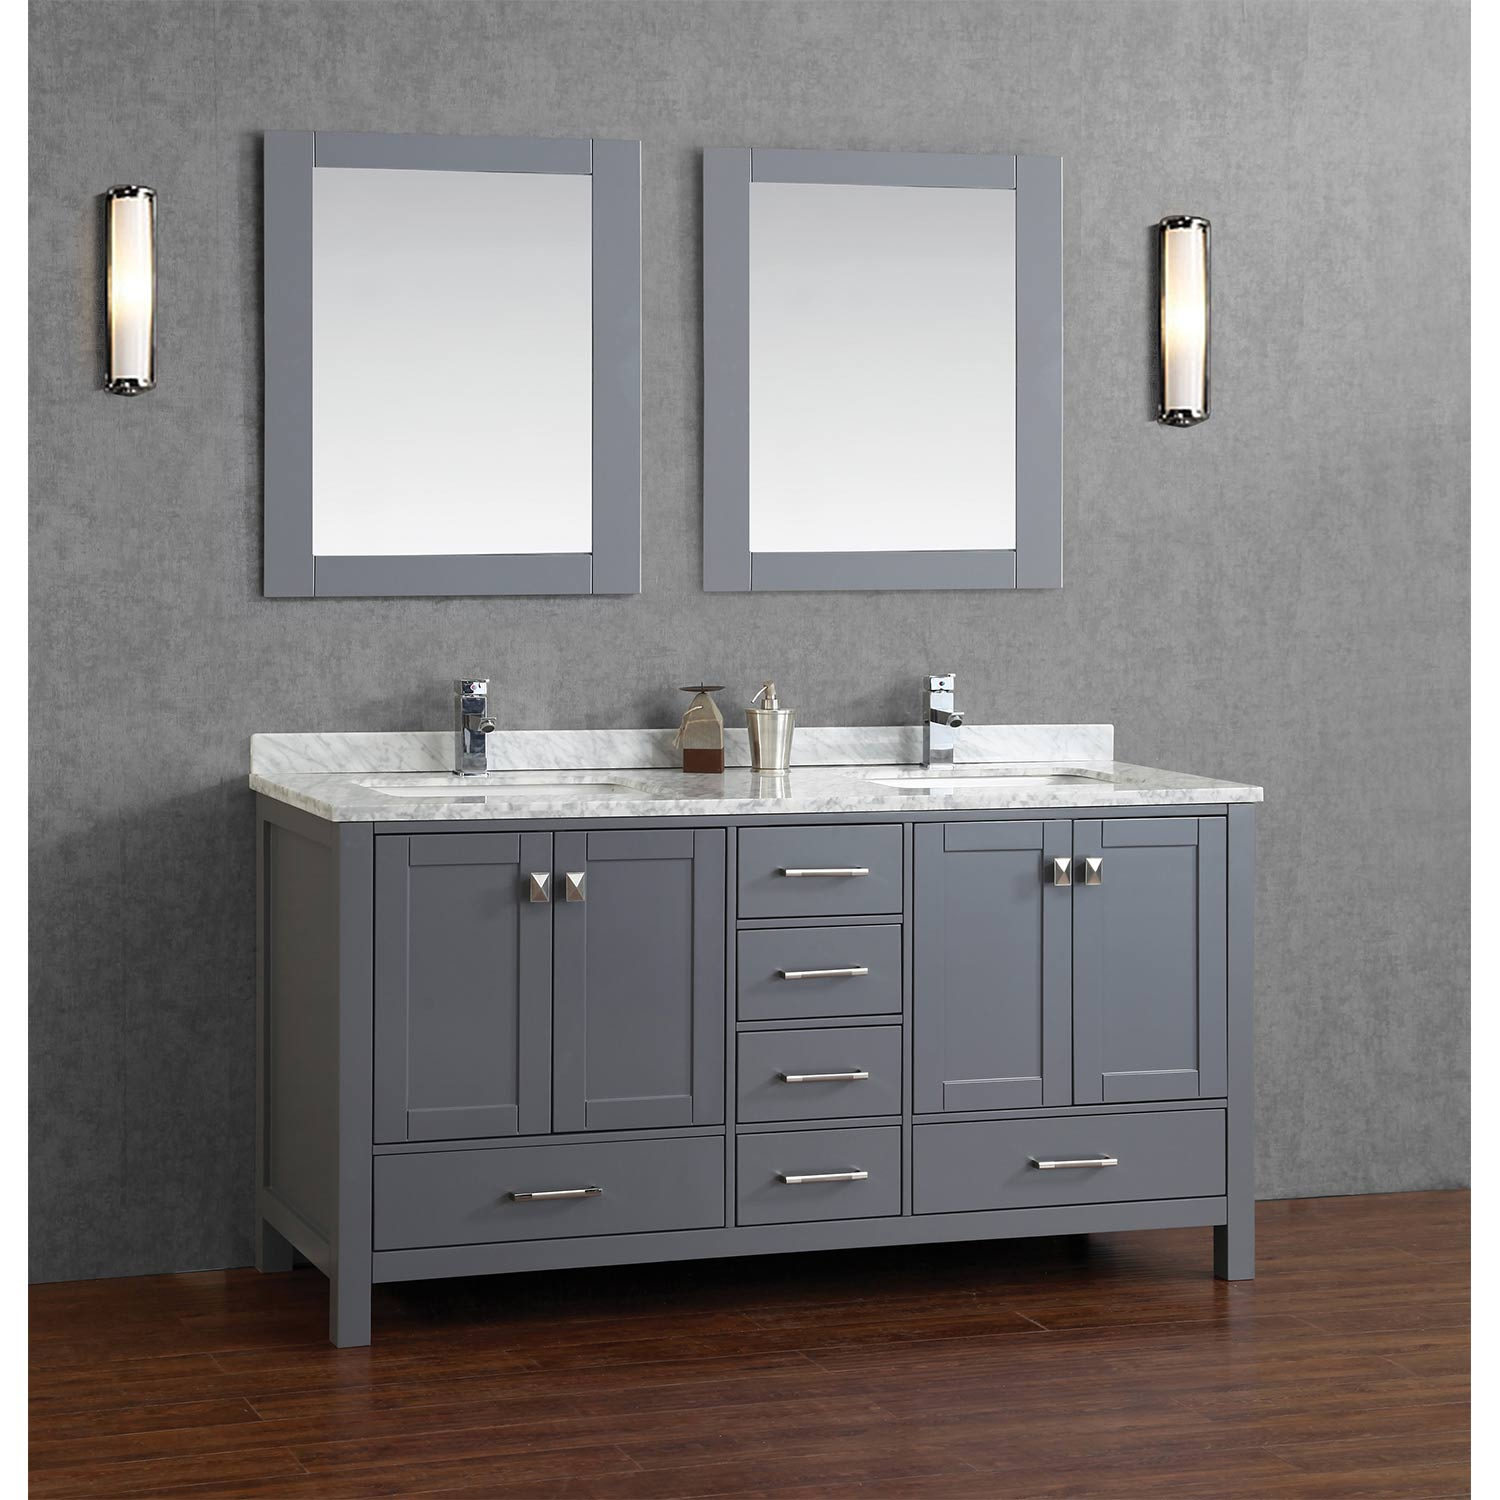 Twin Bathroom Sinks : Buy Vincent 72 Inch Solid Wood Double Bathroom Vanity in Charcoal Grey ...